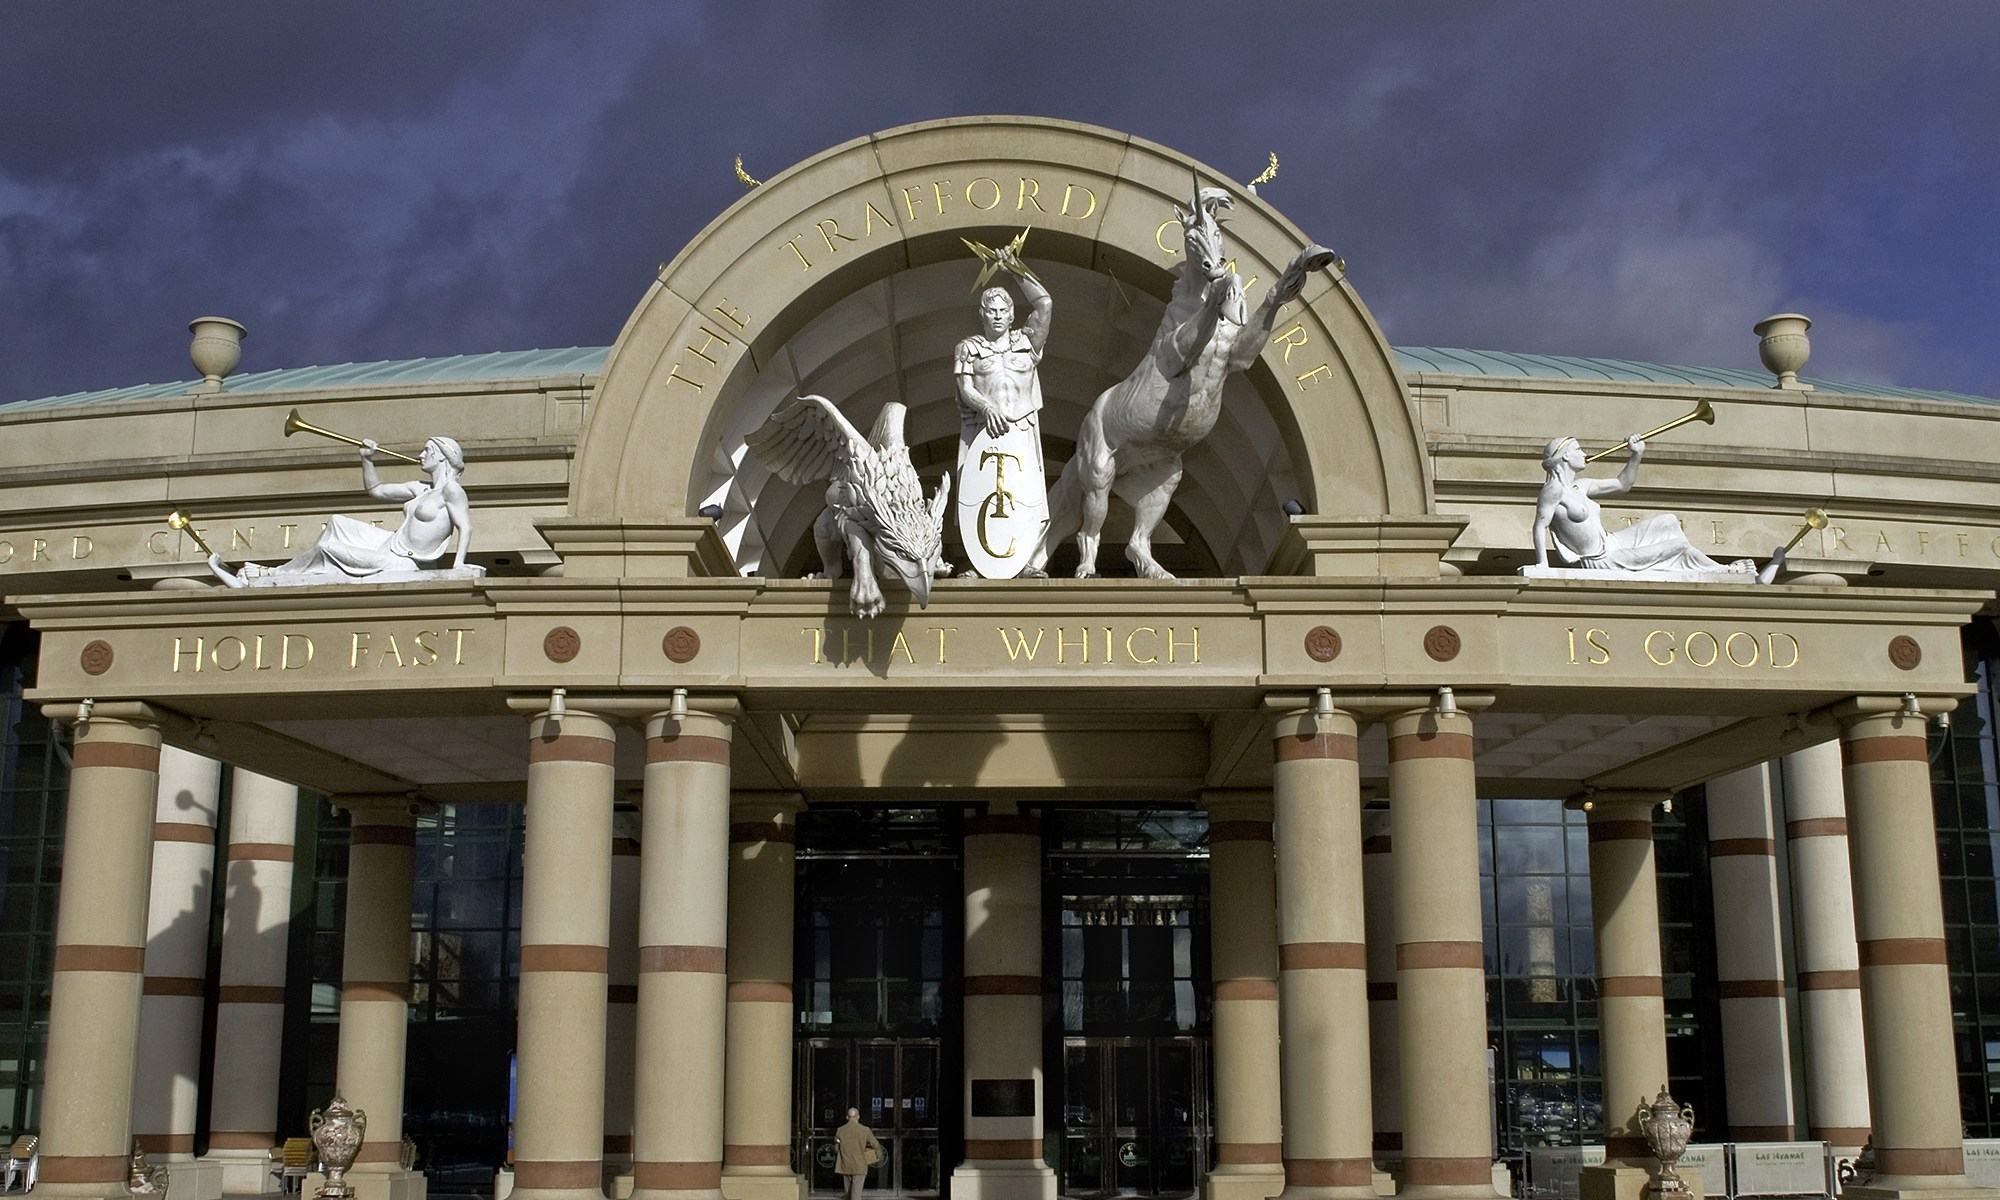 Trafford Centre Main Entrance with Statues